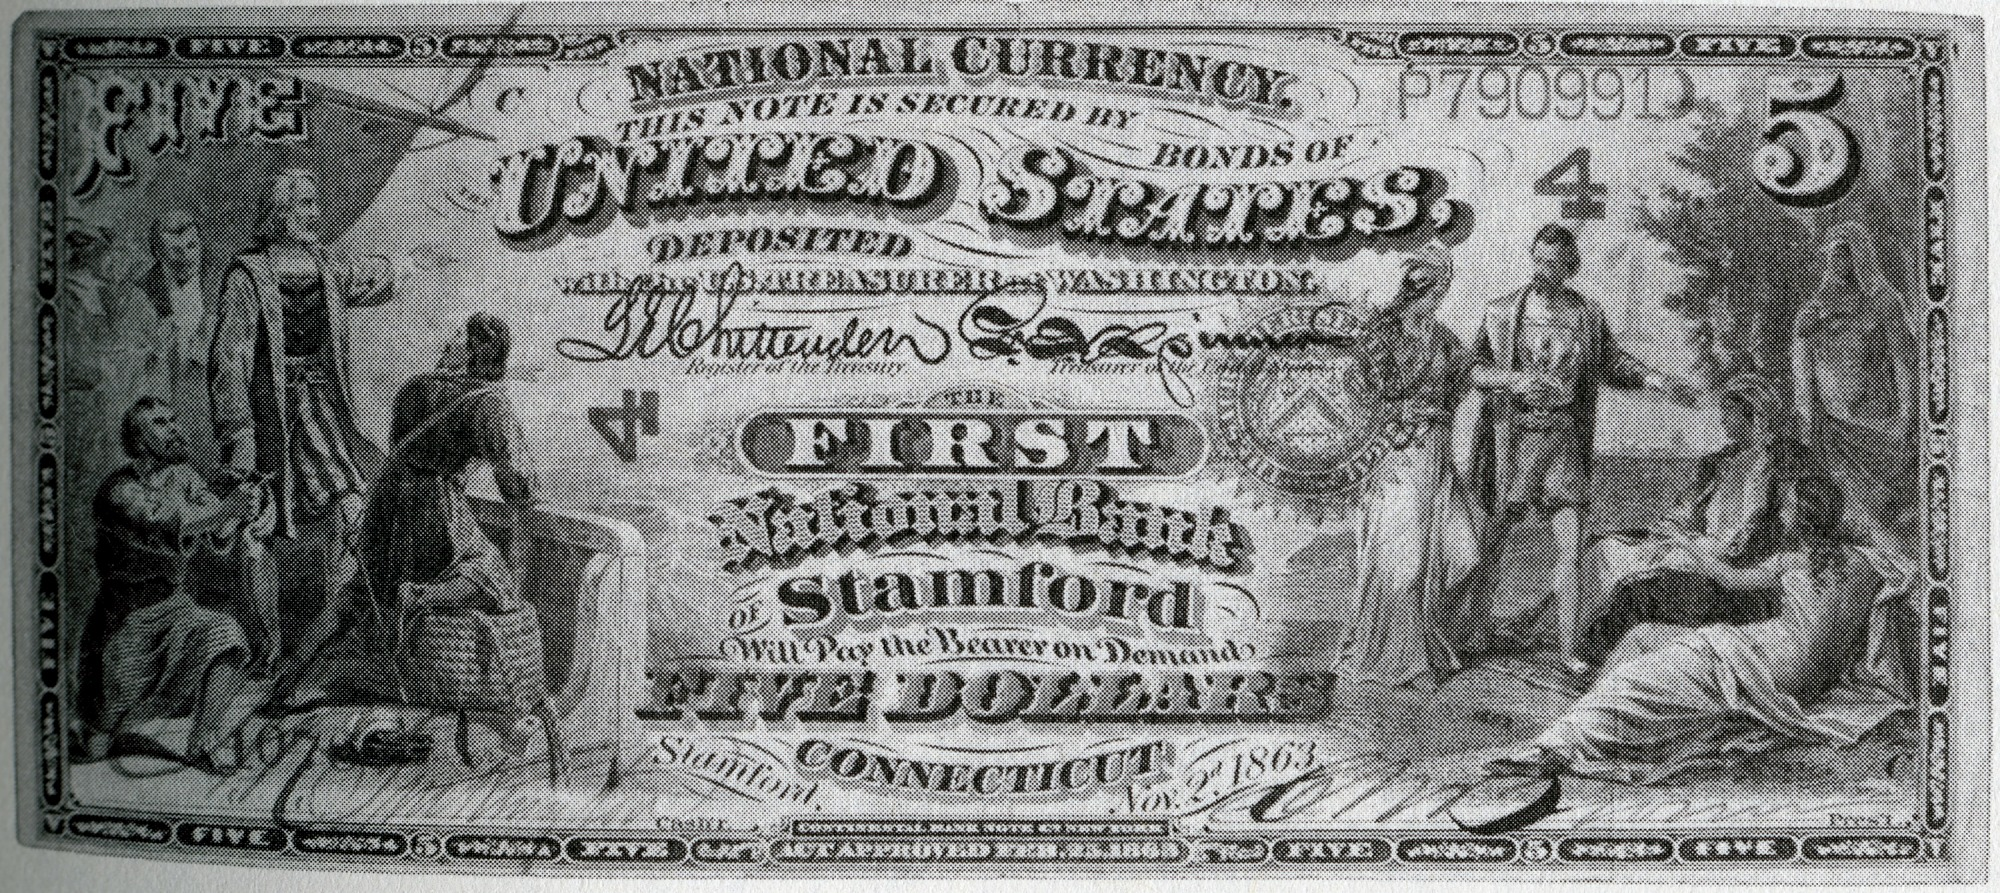 Five dollar bill created by the National Currency Act of February 25, 1863, by Joseph Henry Papers Project, 1863, Smithsonian Archives - History Div, SIA2012-3533.